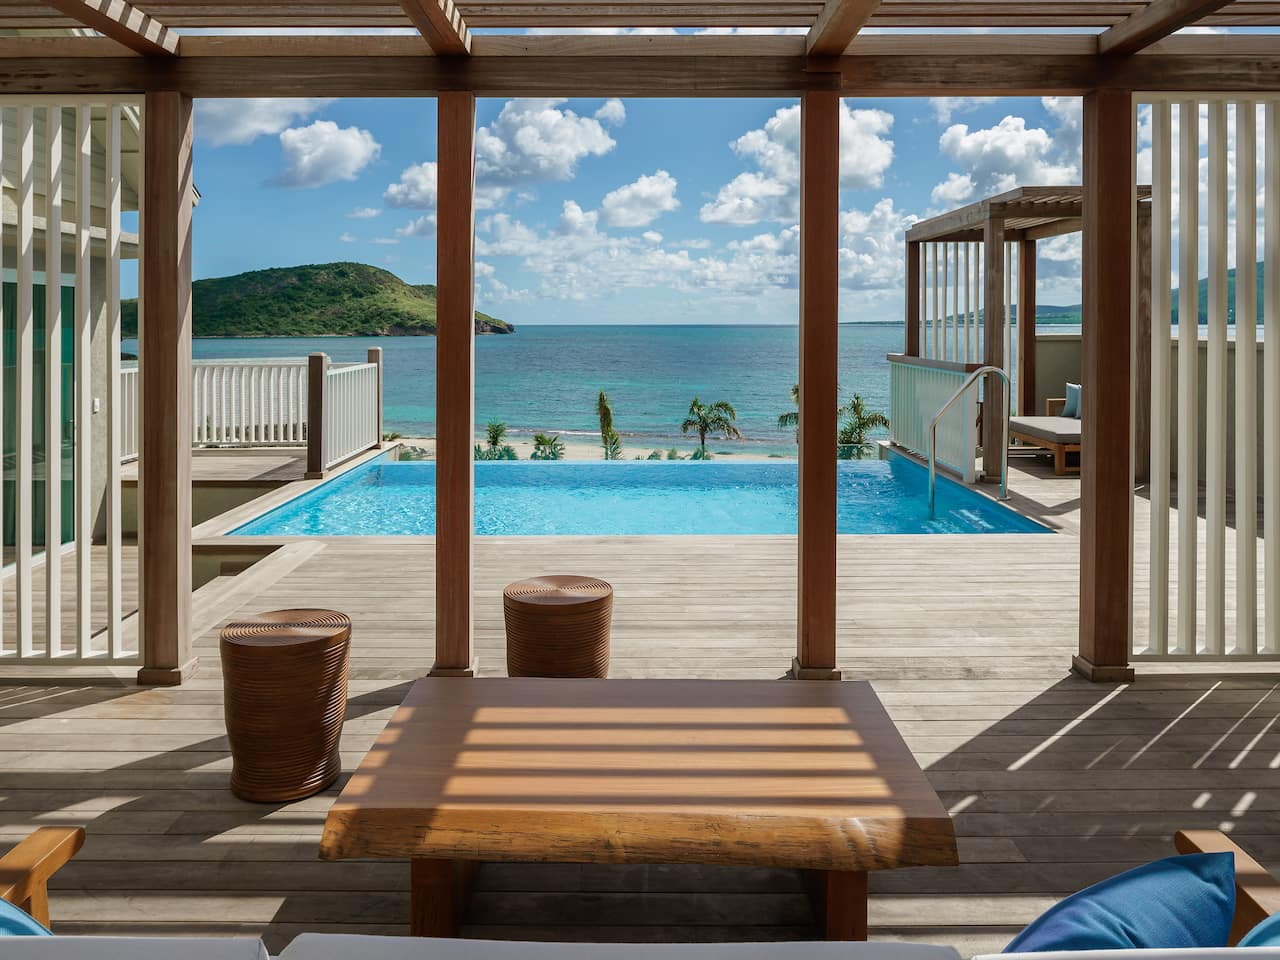 Park Hyatt St. Kitts Christophe Harbour Executive Suite Pool